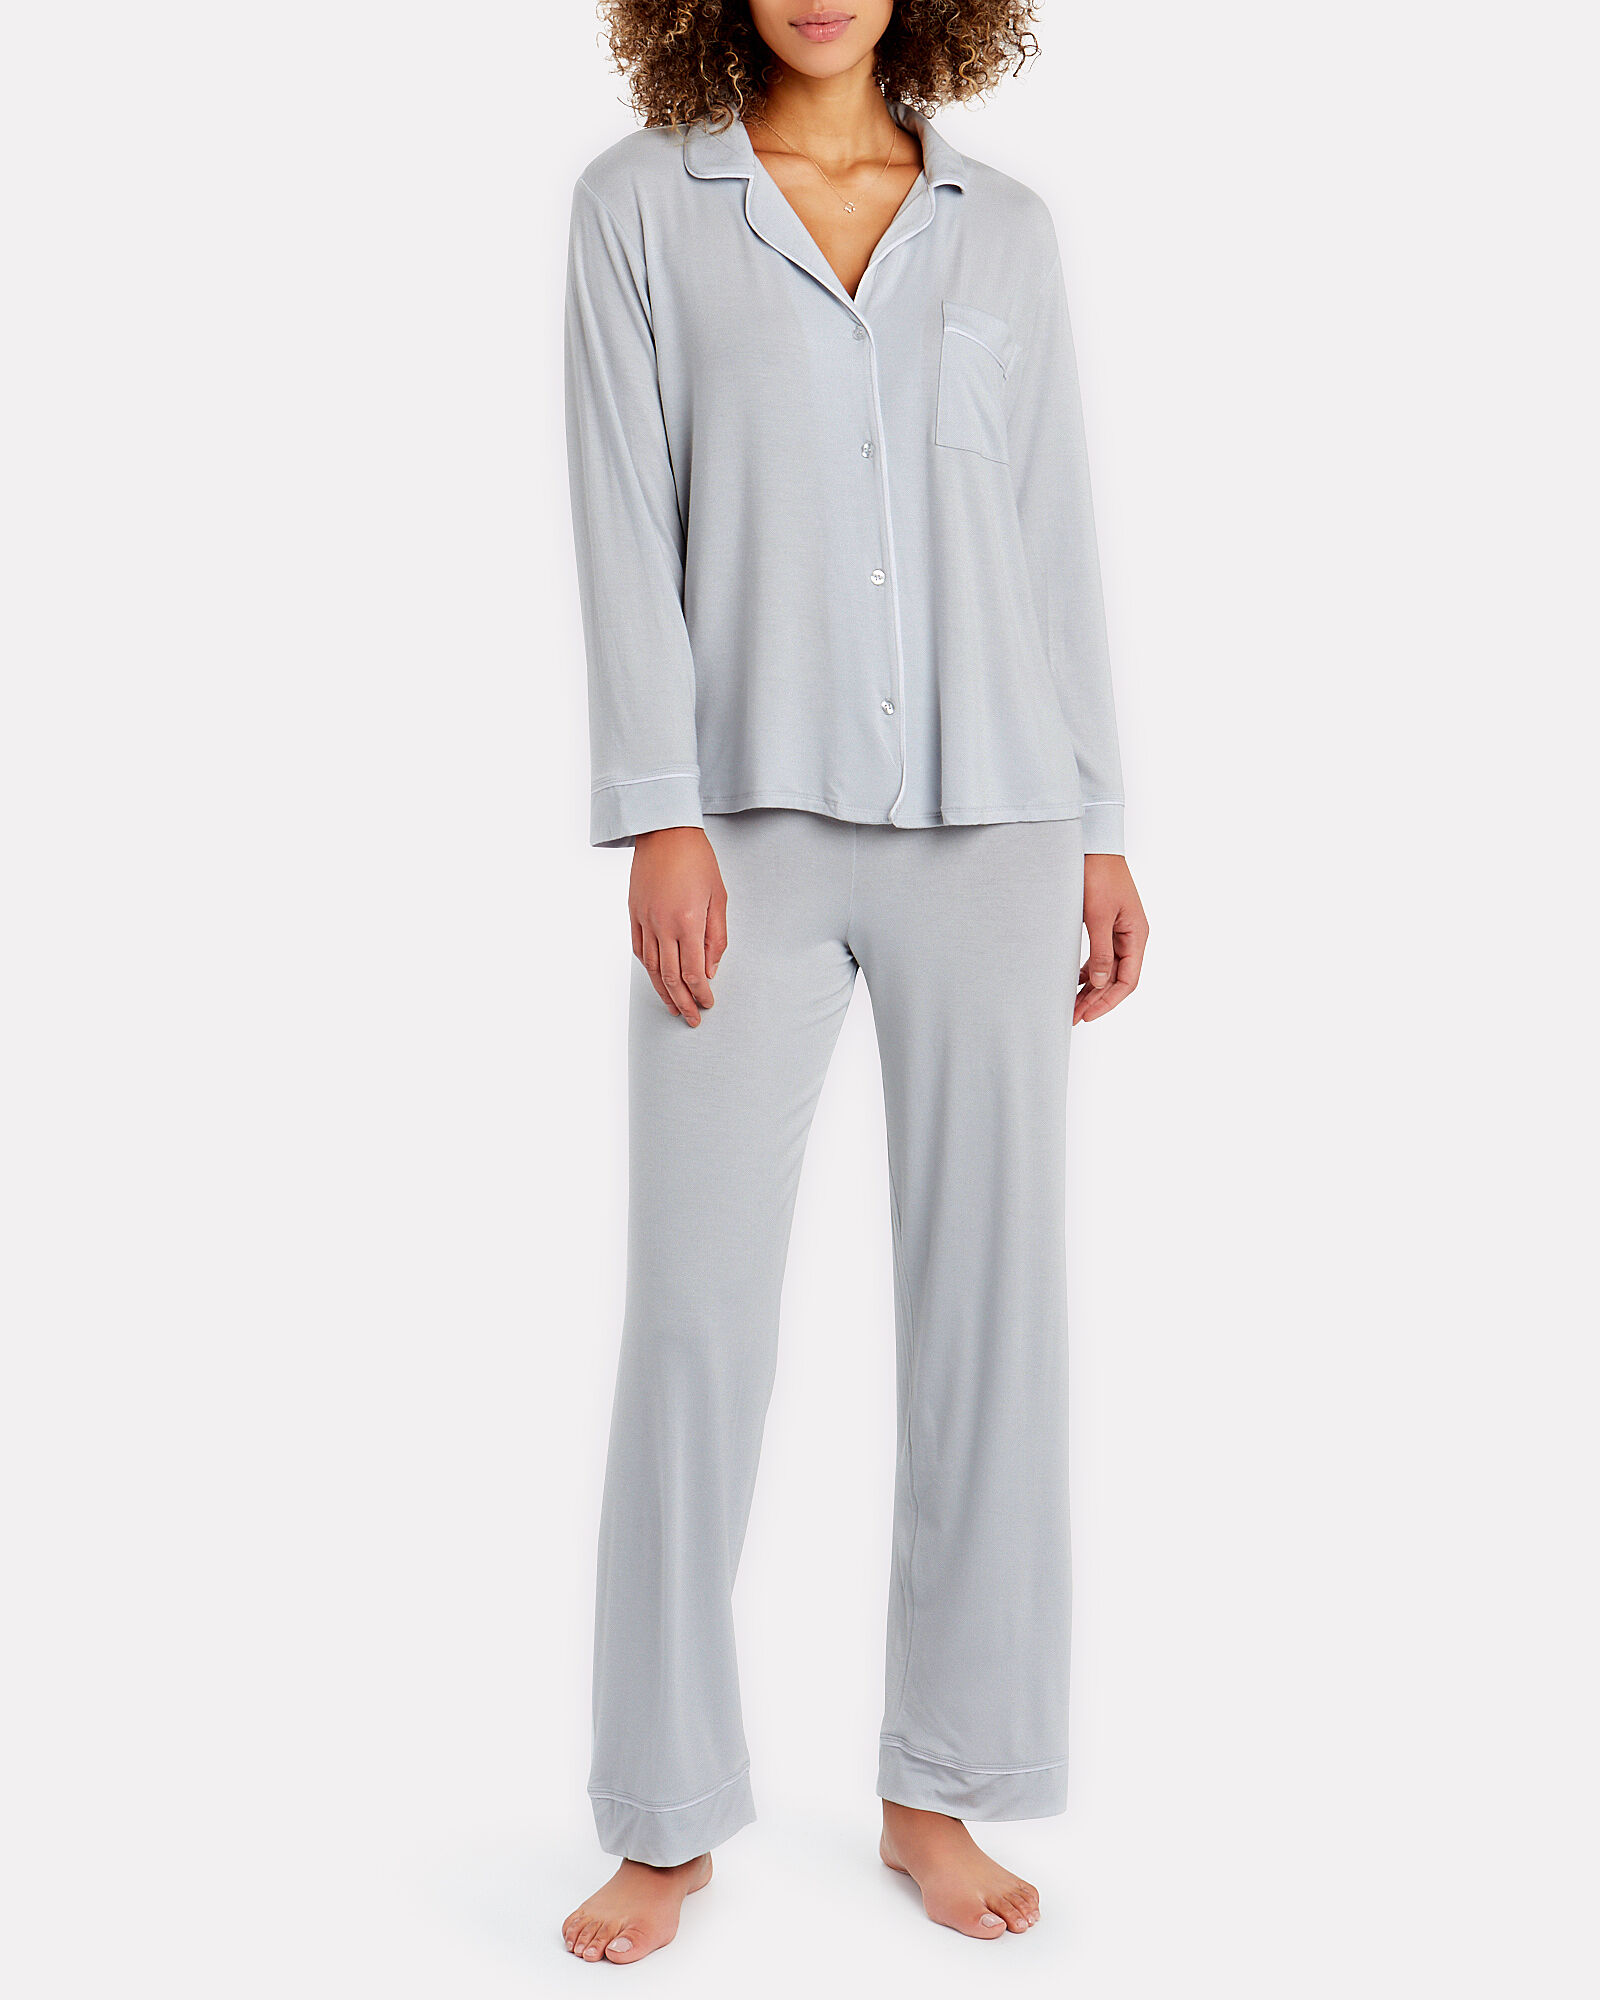 Gisele Pajama Set, PALE BLUE, hi-res